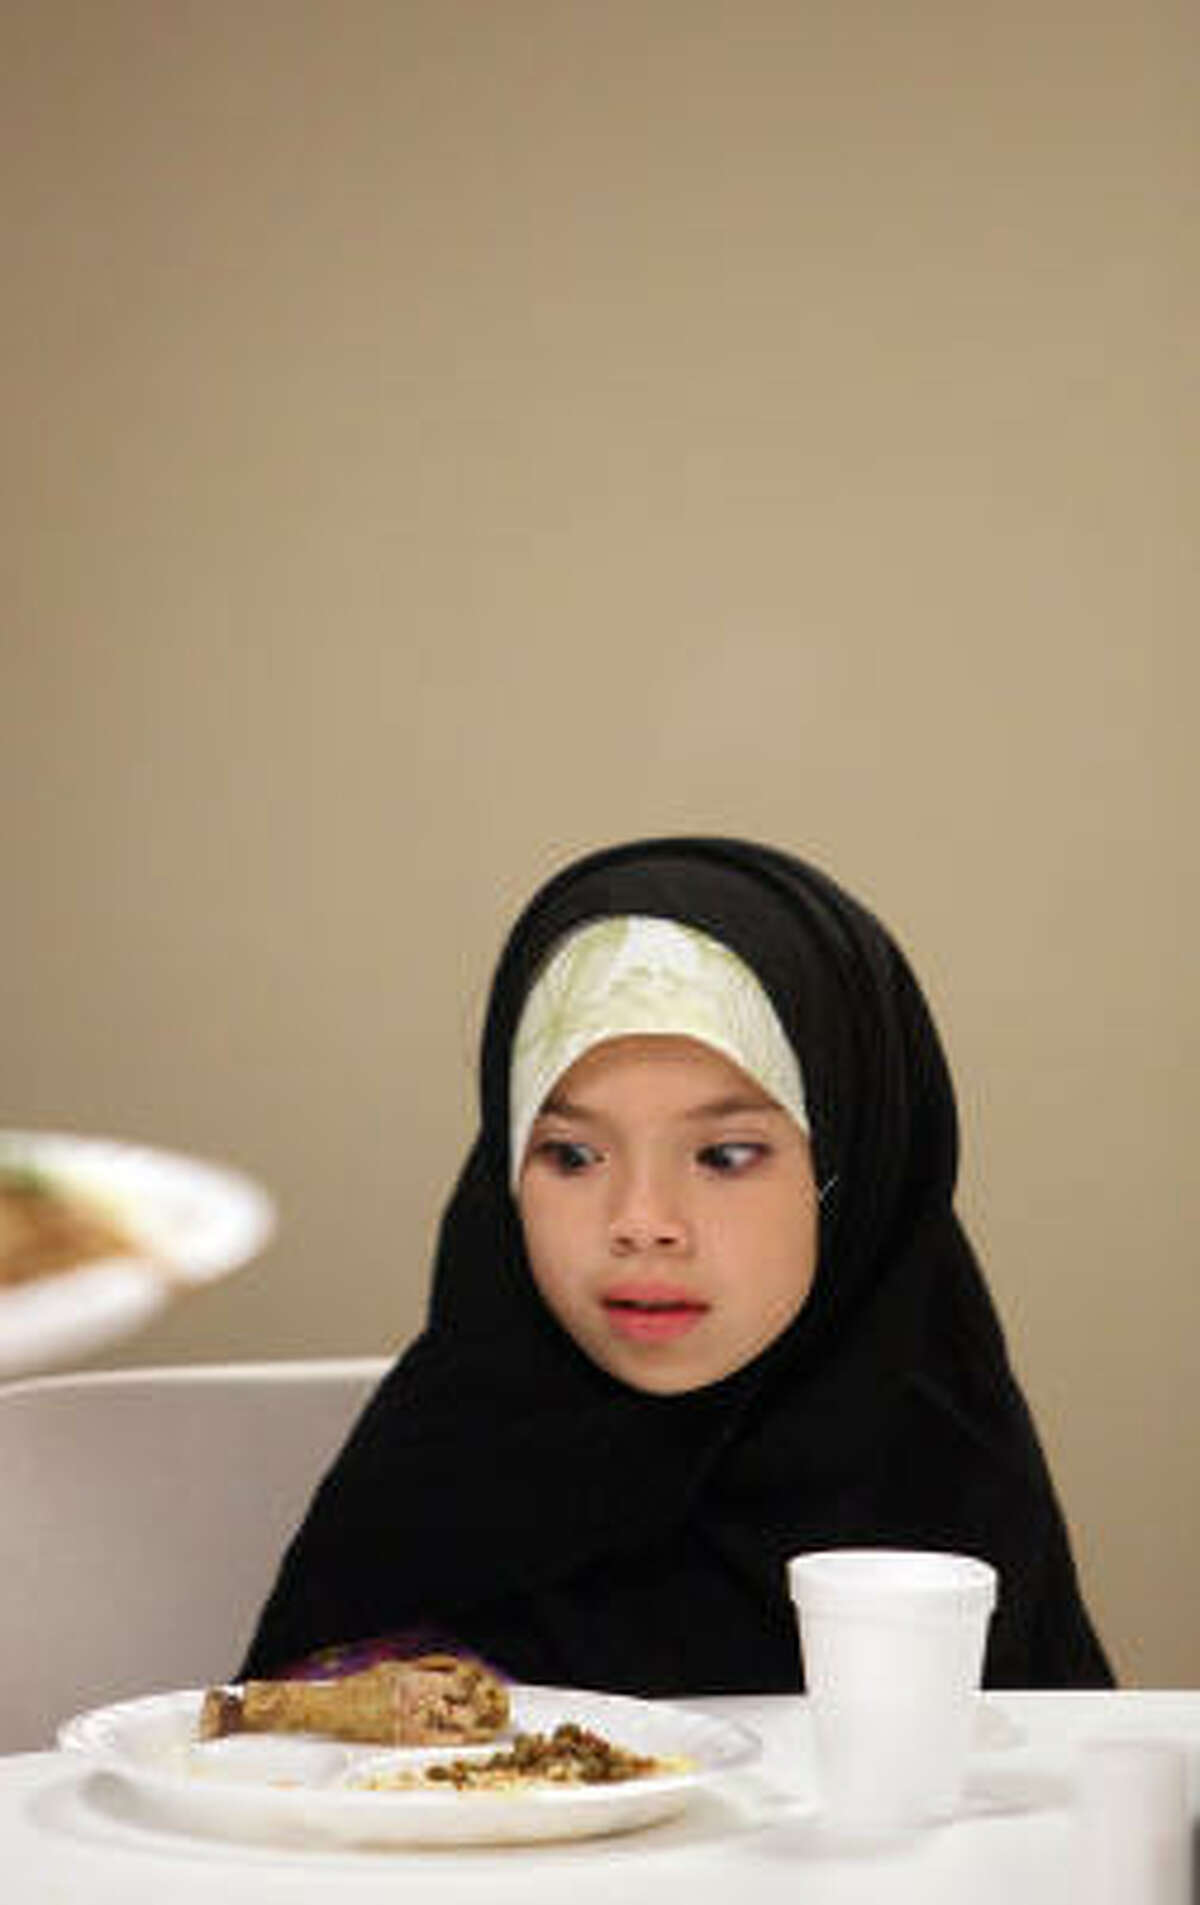 Sundos Barakat, 8, fasted for the whole day, although children are not obligated to until they reach puberty. She attended the iftar with her mother and two sisters.